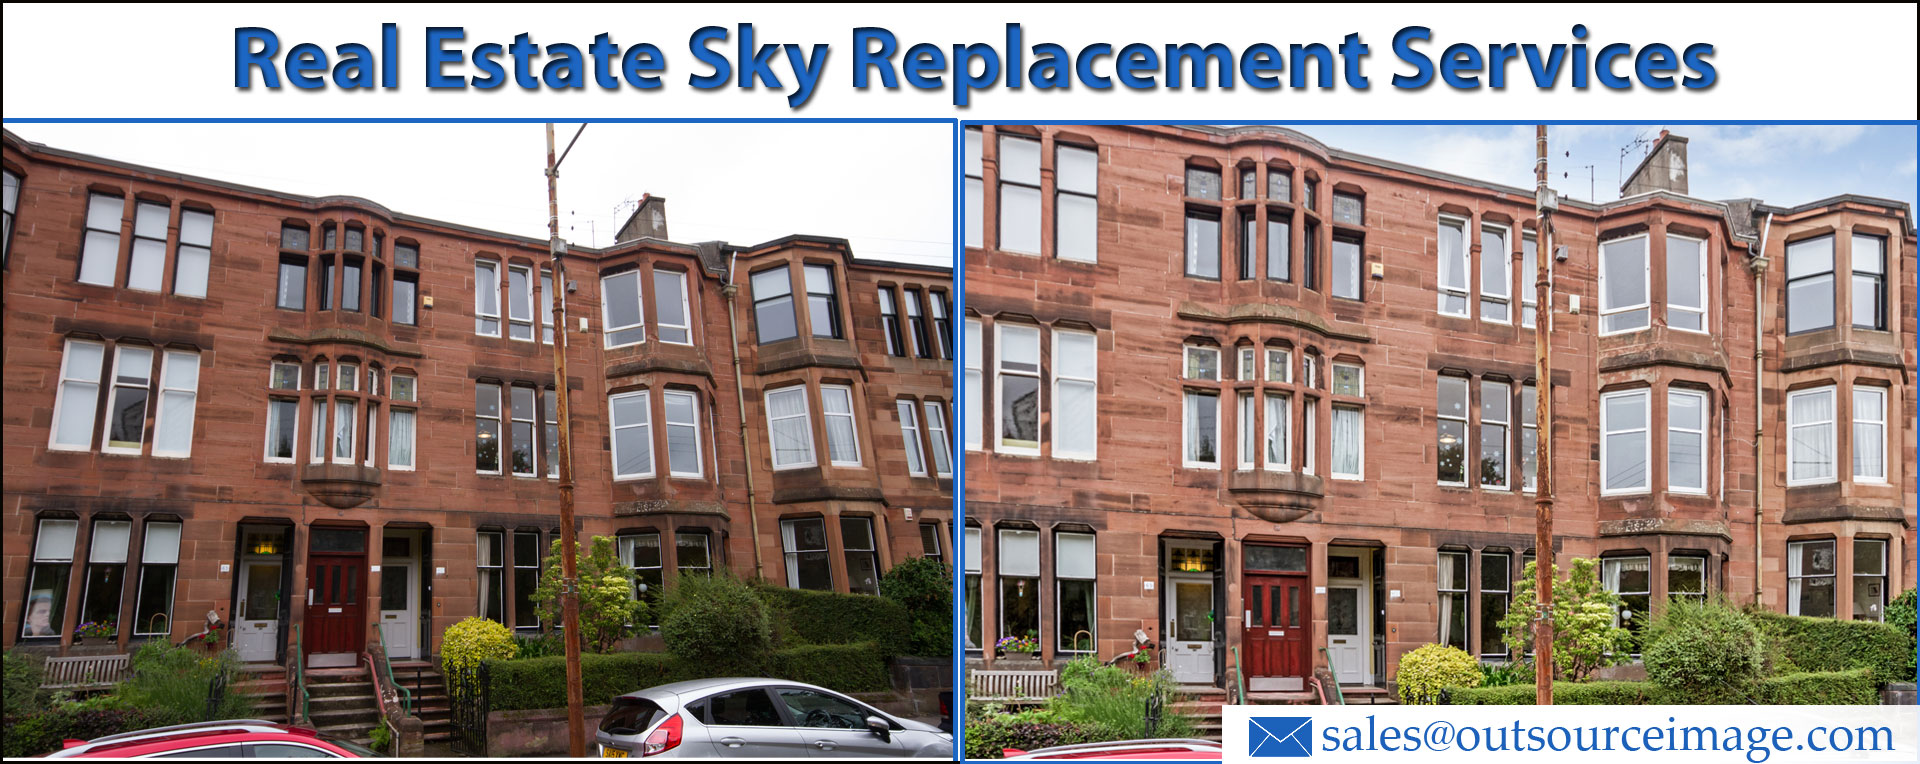 Real Estate Sky Replacement Services | Photoshop Real Estate Photo Sky Change Services